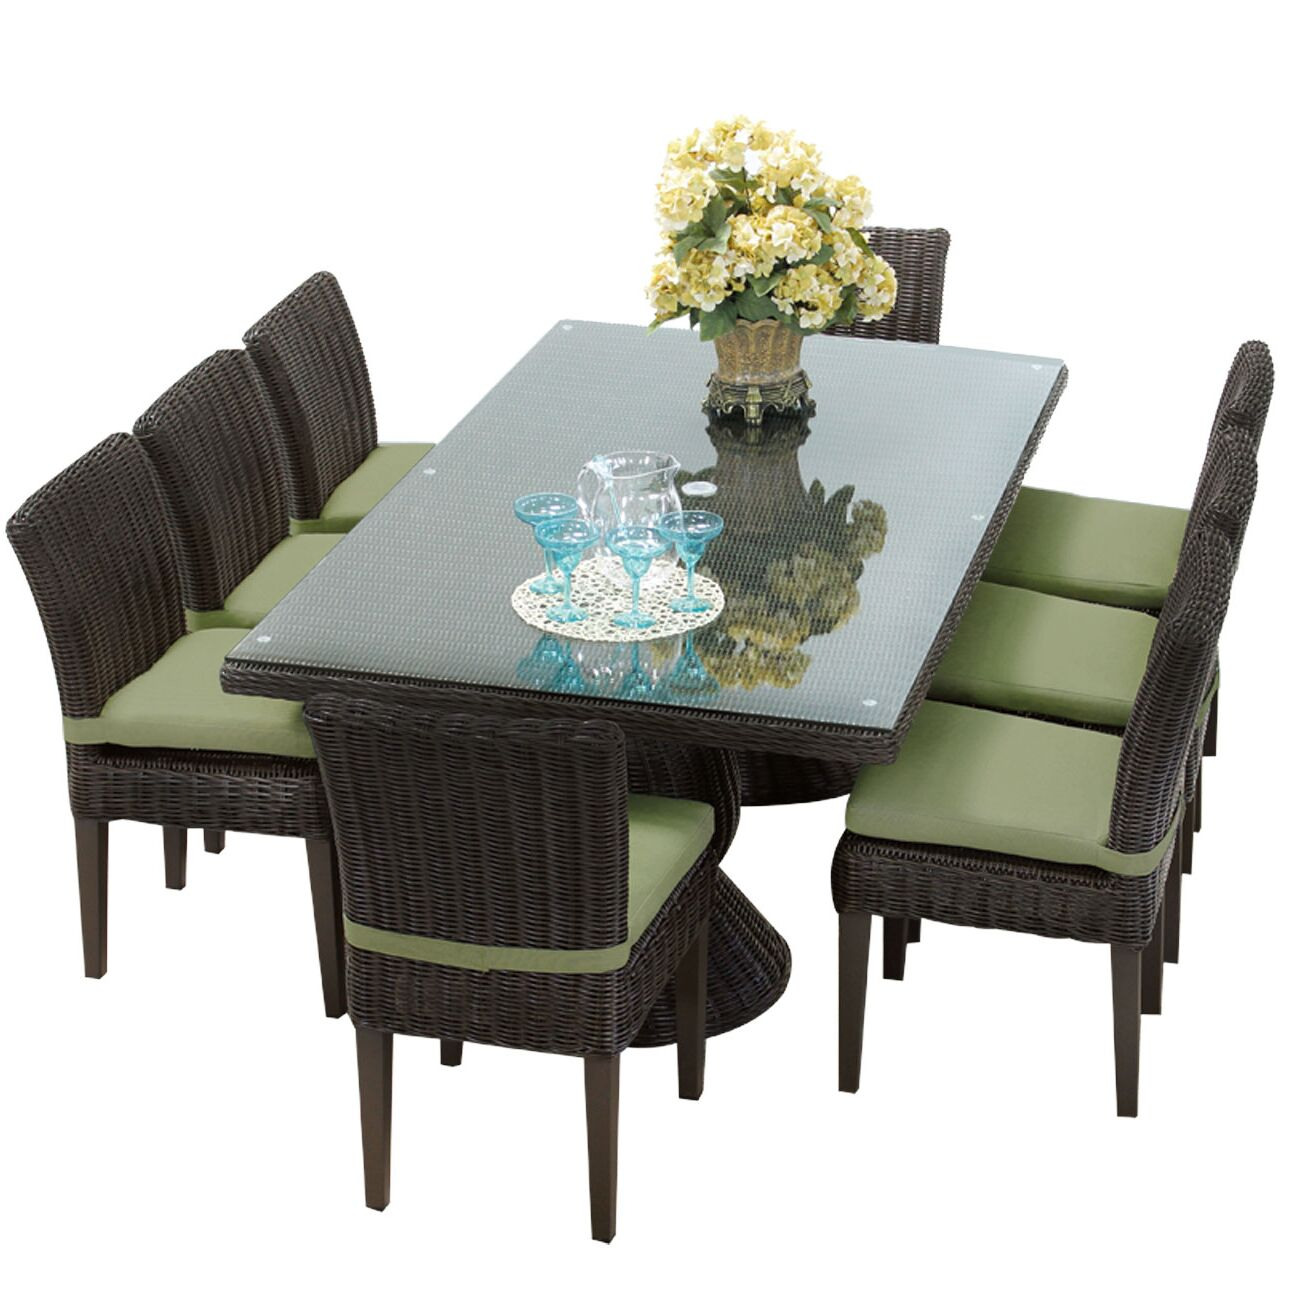 Eldredge 9 Piece Dining Set with Cushions Cushion Color: Cilantro